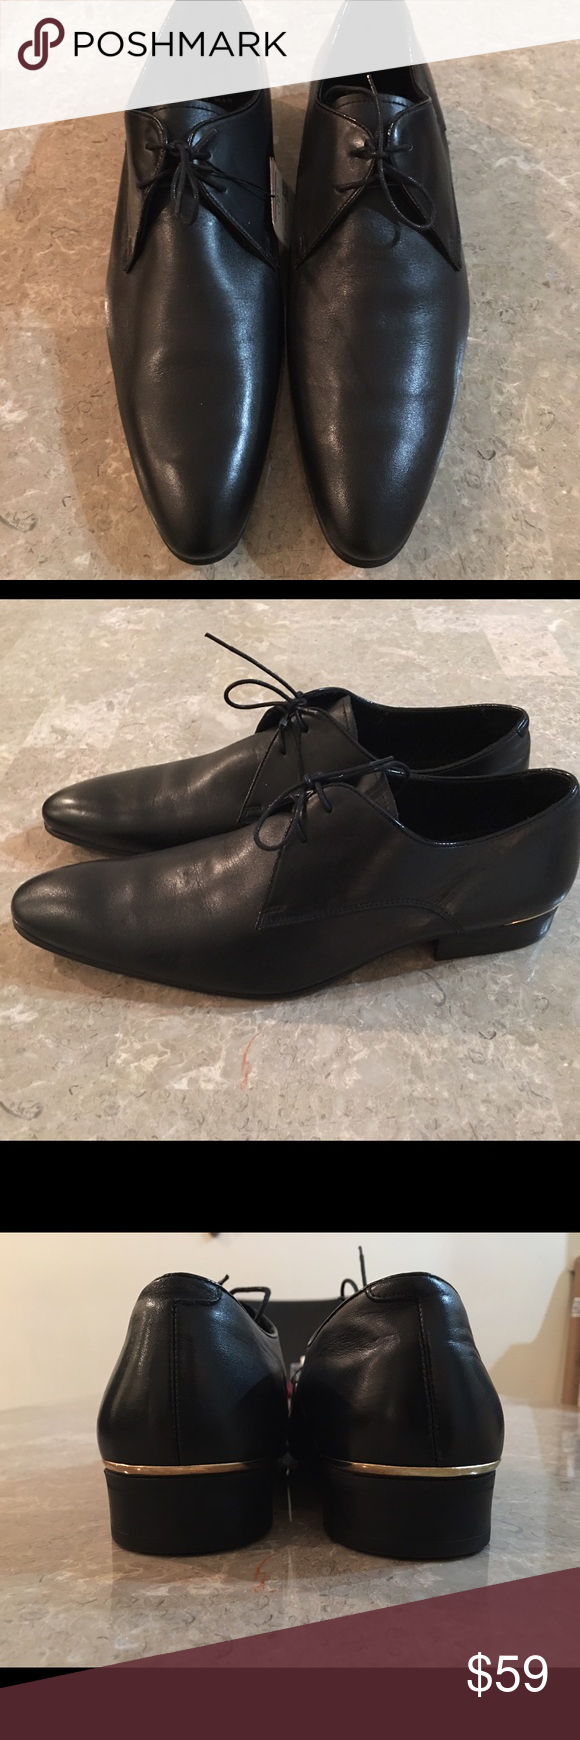 Zara Man Shoes for Men High Quality Dress Shoes by Zara Zara Shoes Oxfords & Derbys